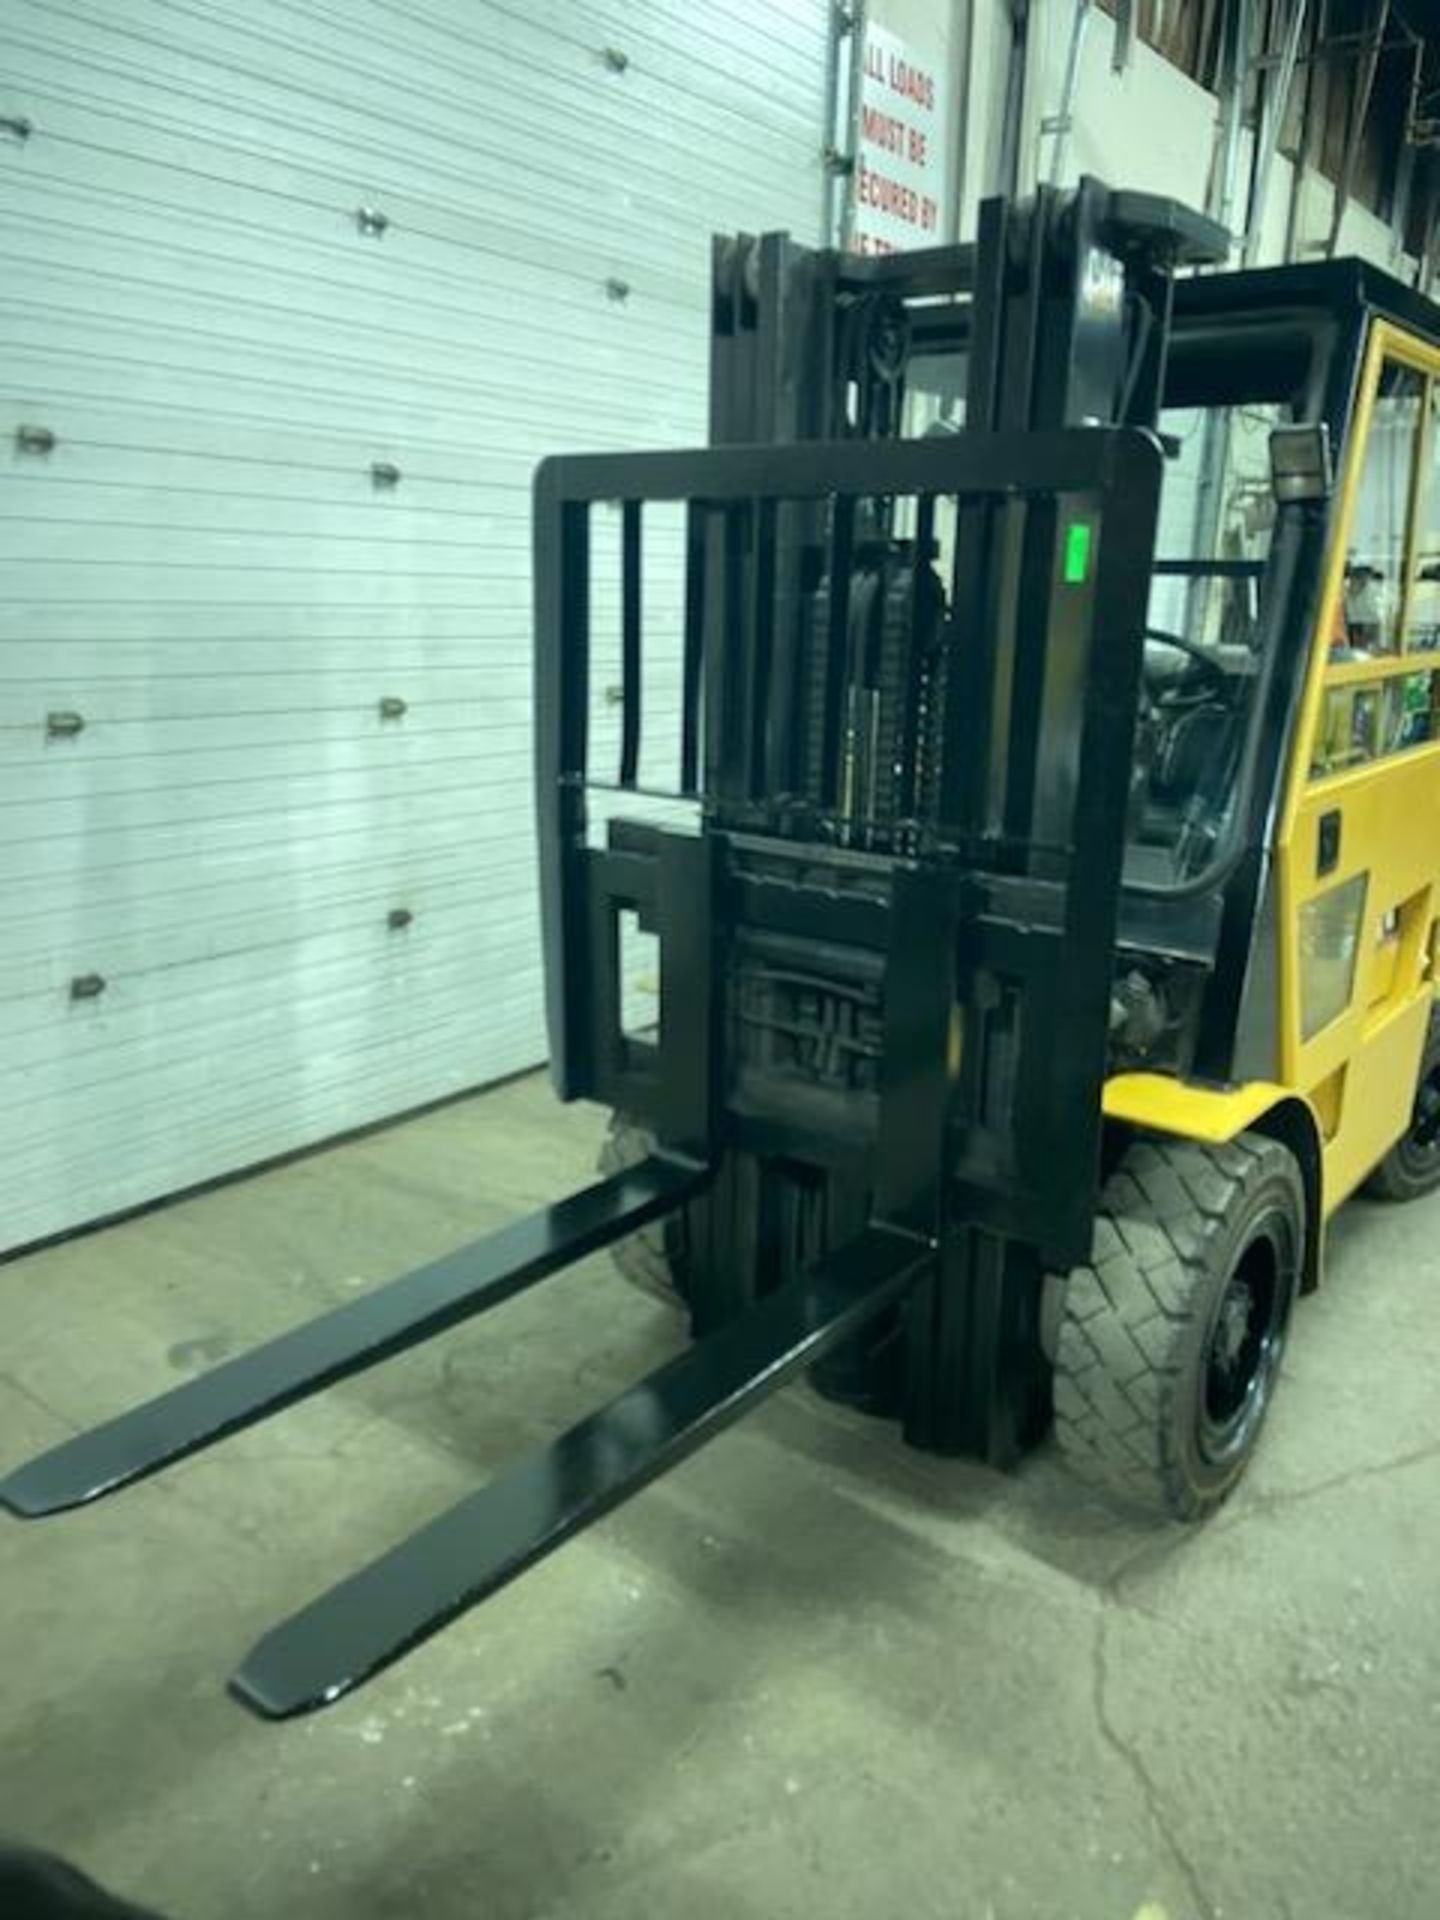 FREE CUSTOMS - CAT 6000lbs OUTDOOR Capacity Forklift LPG (propane) with 3-stage mast and - Image 2 of 3